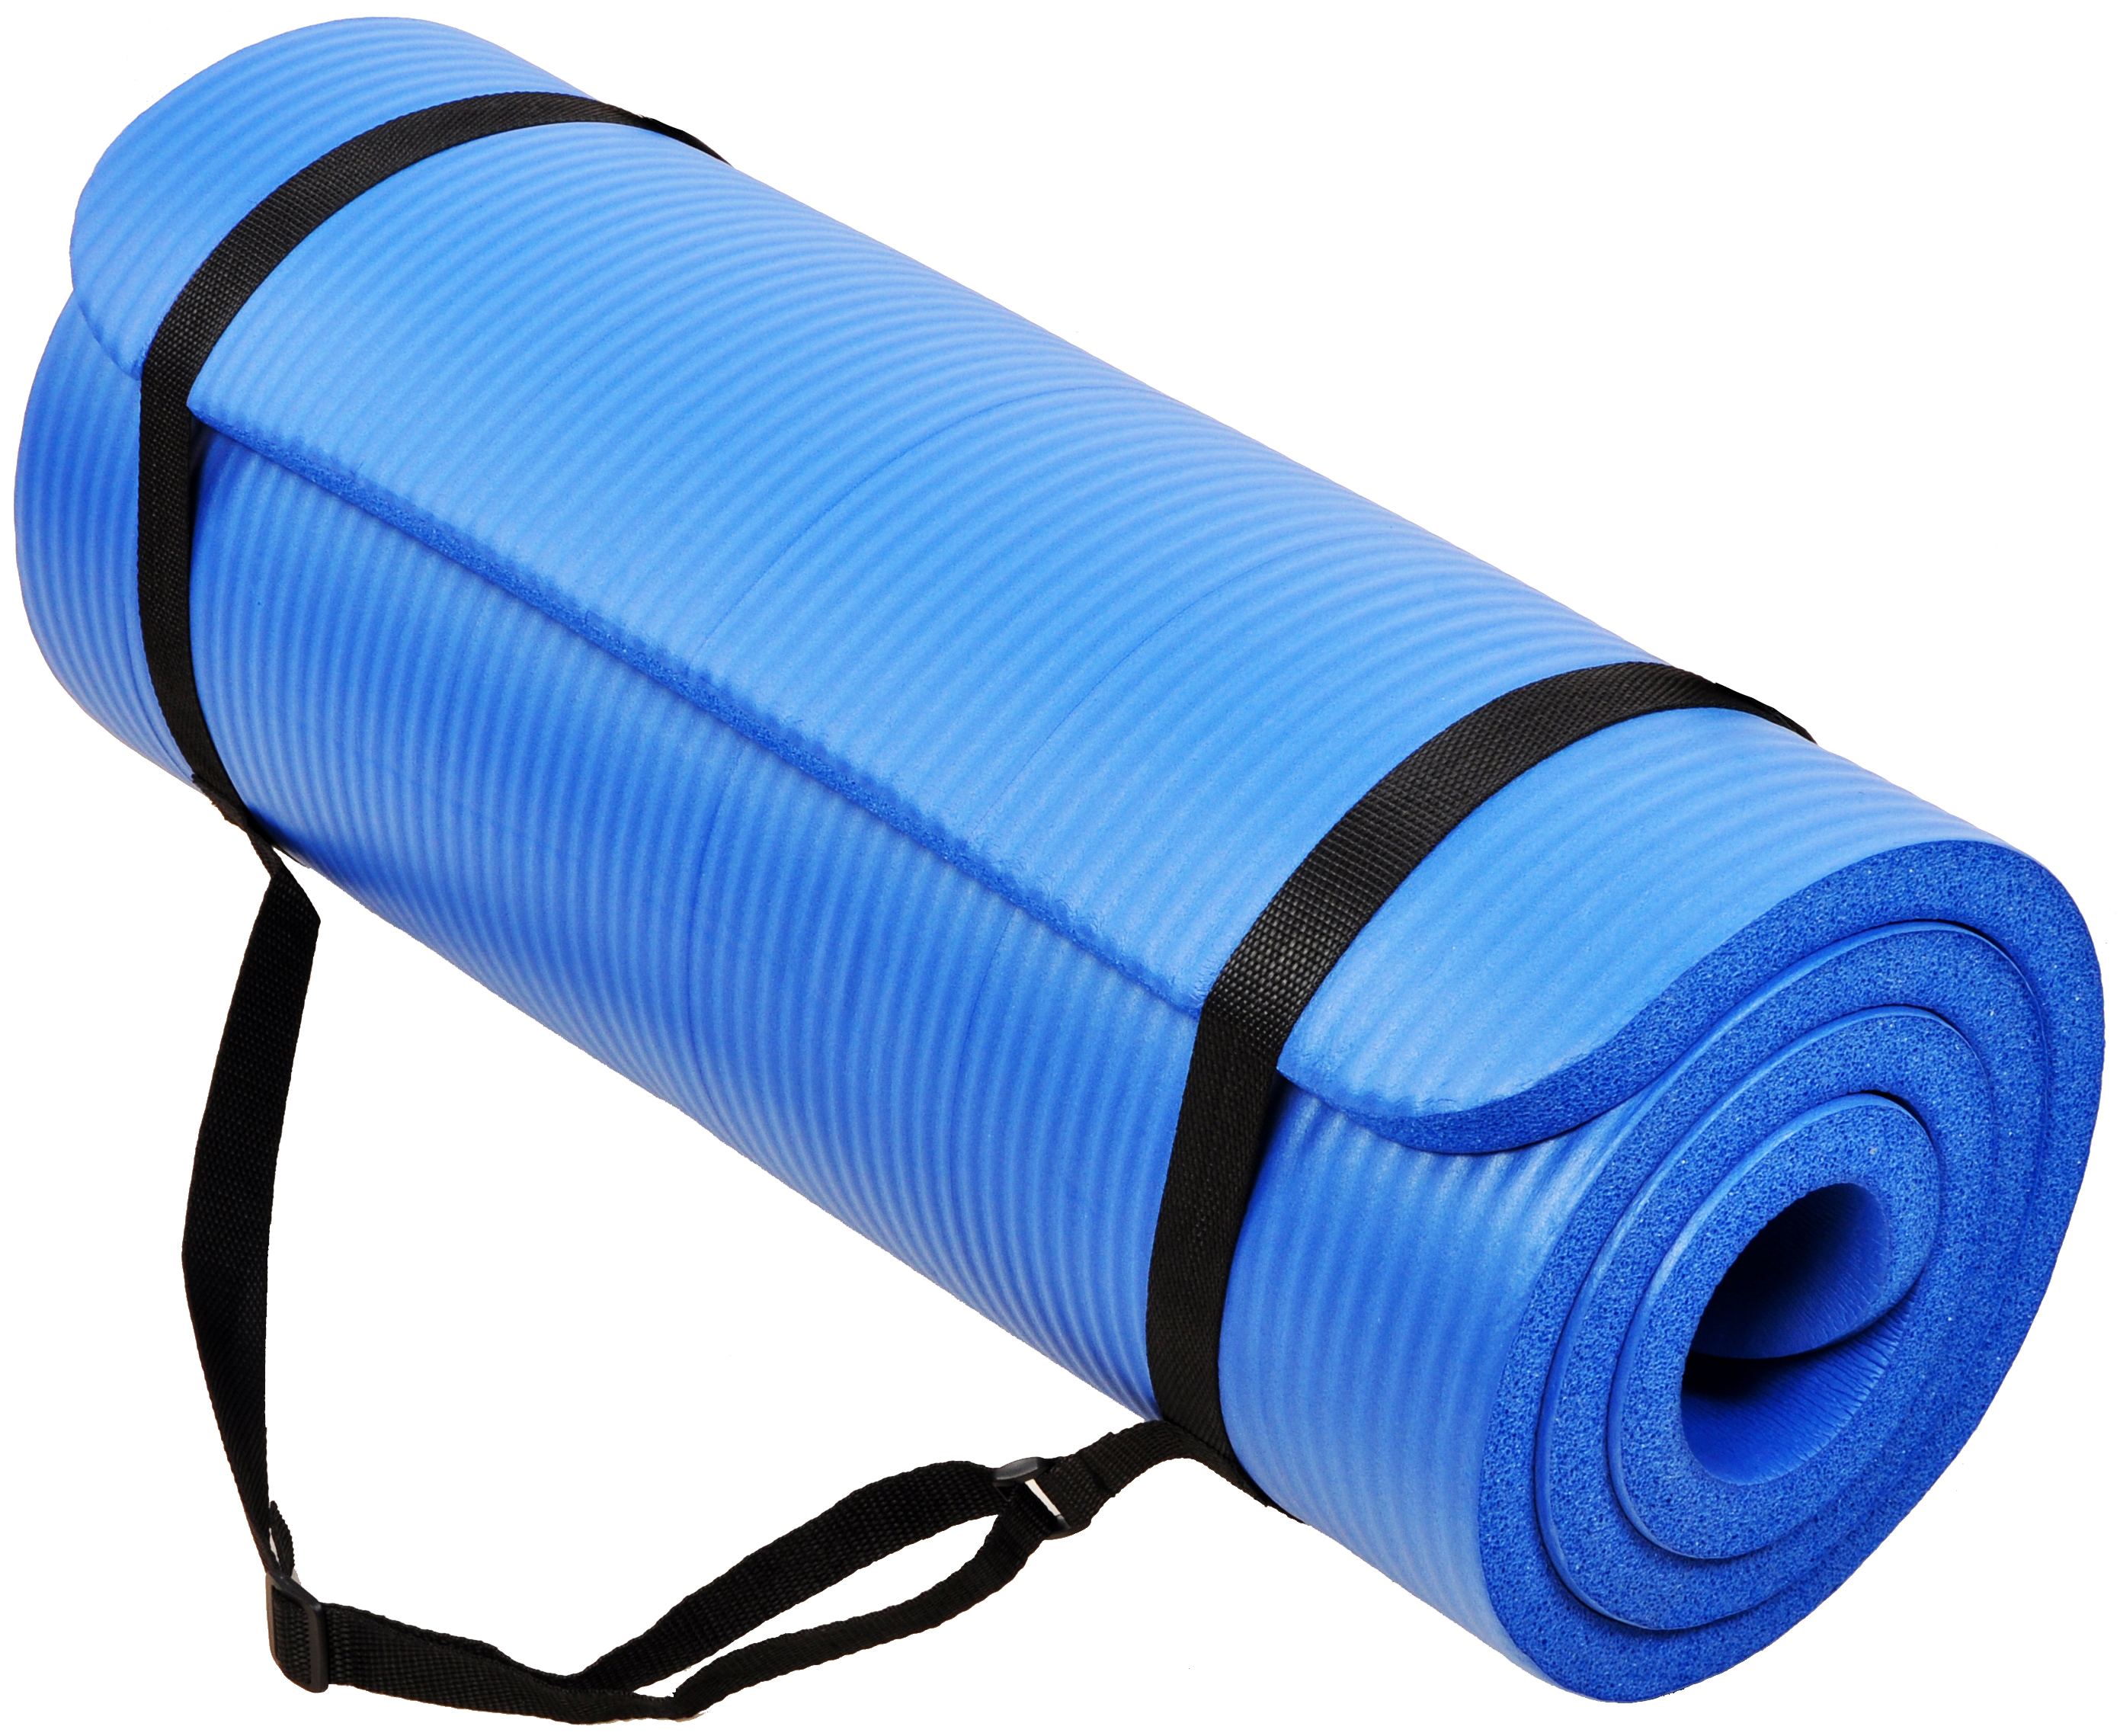 Exercise Yoga Foam Mat All-Purpose 1//2-Inch Extra Thick High Density Anti-Tear